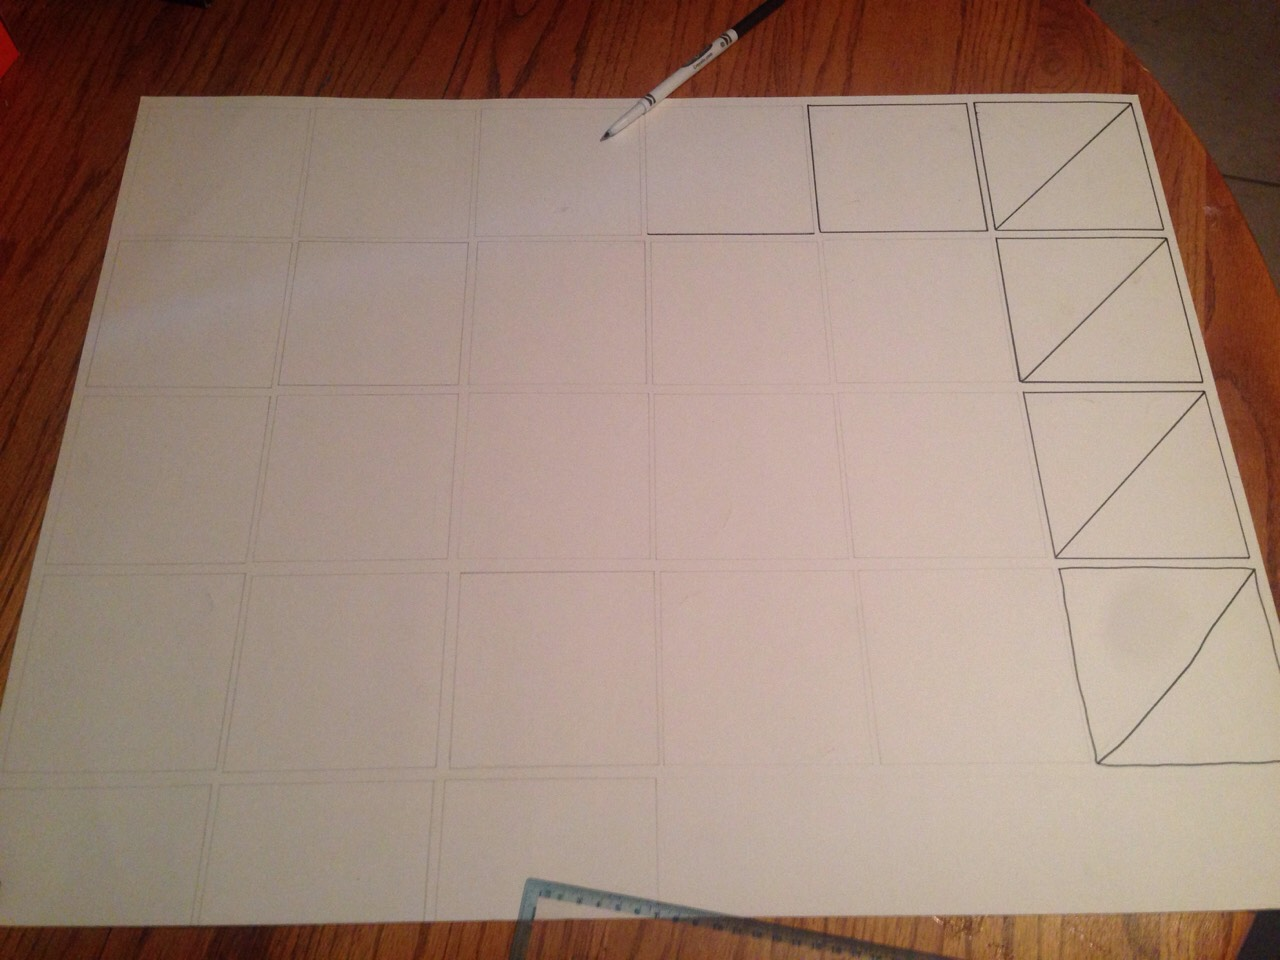 Make your squares 6 by 5 then trace it with a marker